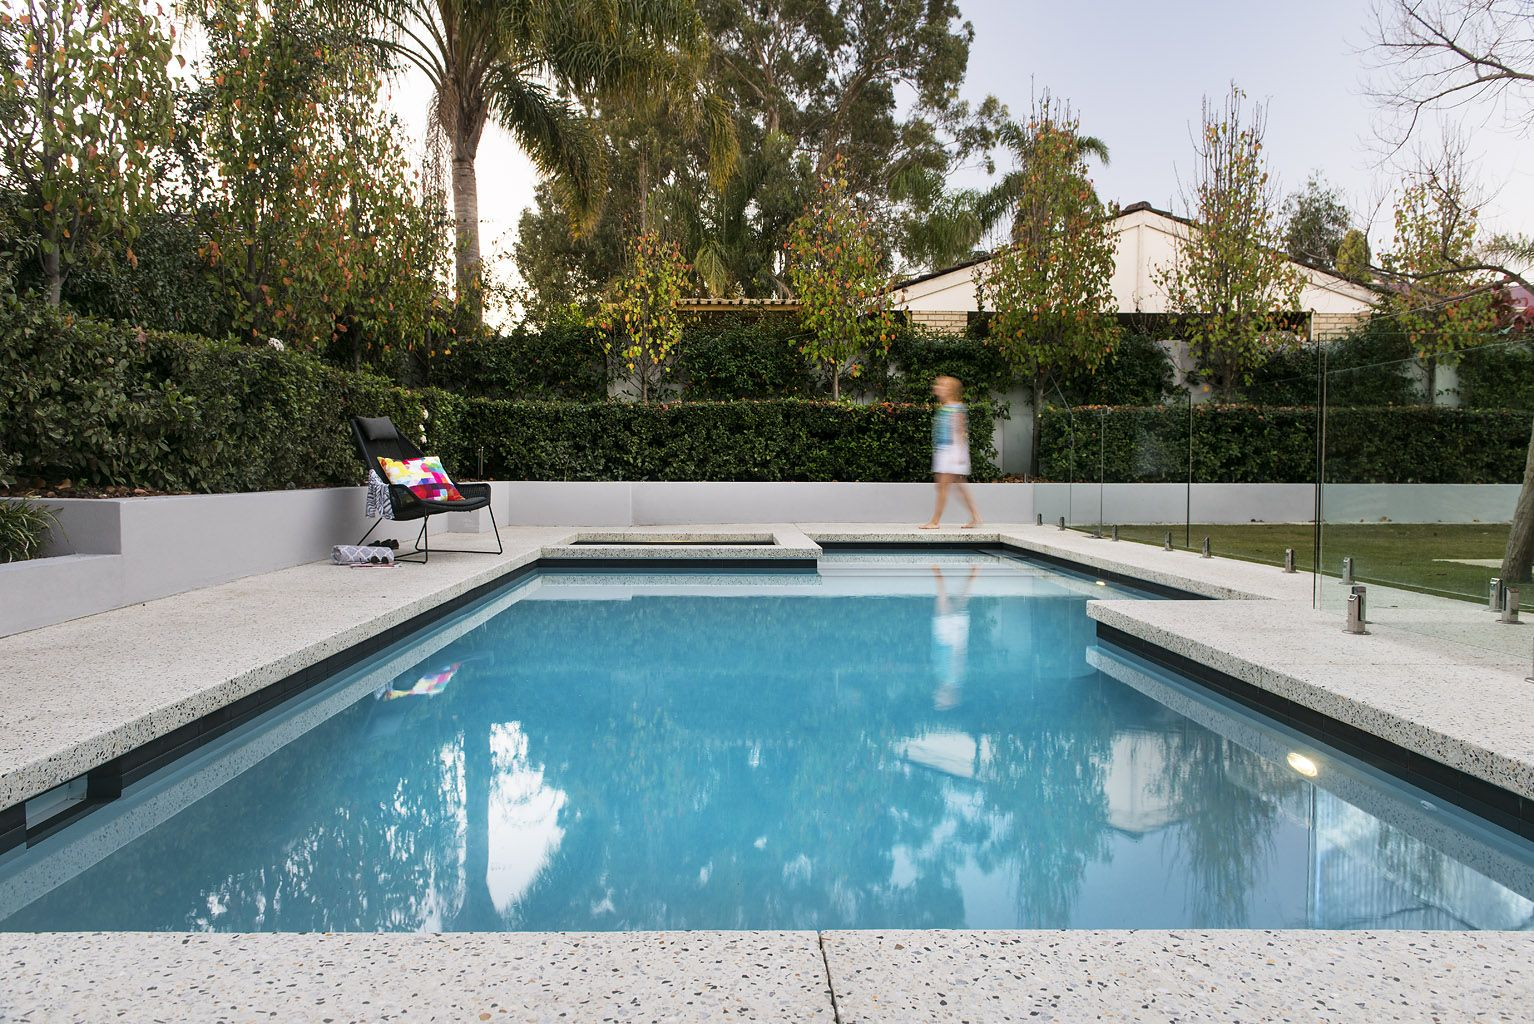 Decorative concrete pool surrounds options add value with for Swimming pool surrounds design